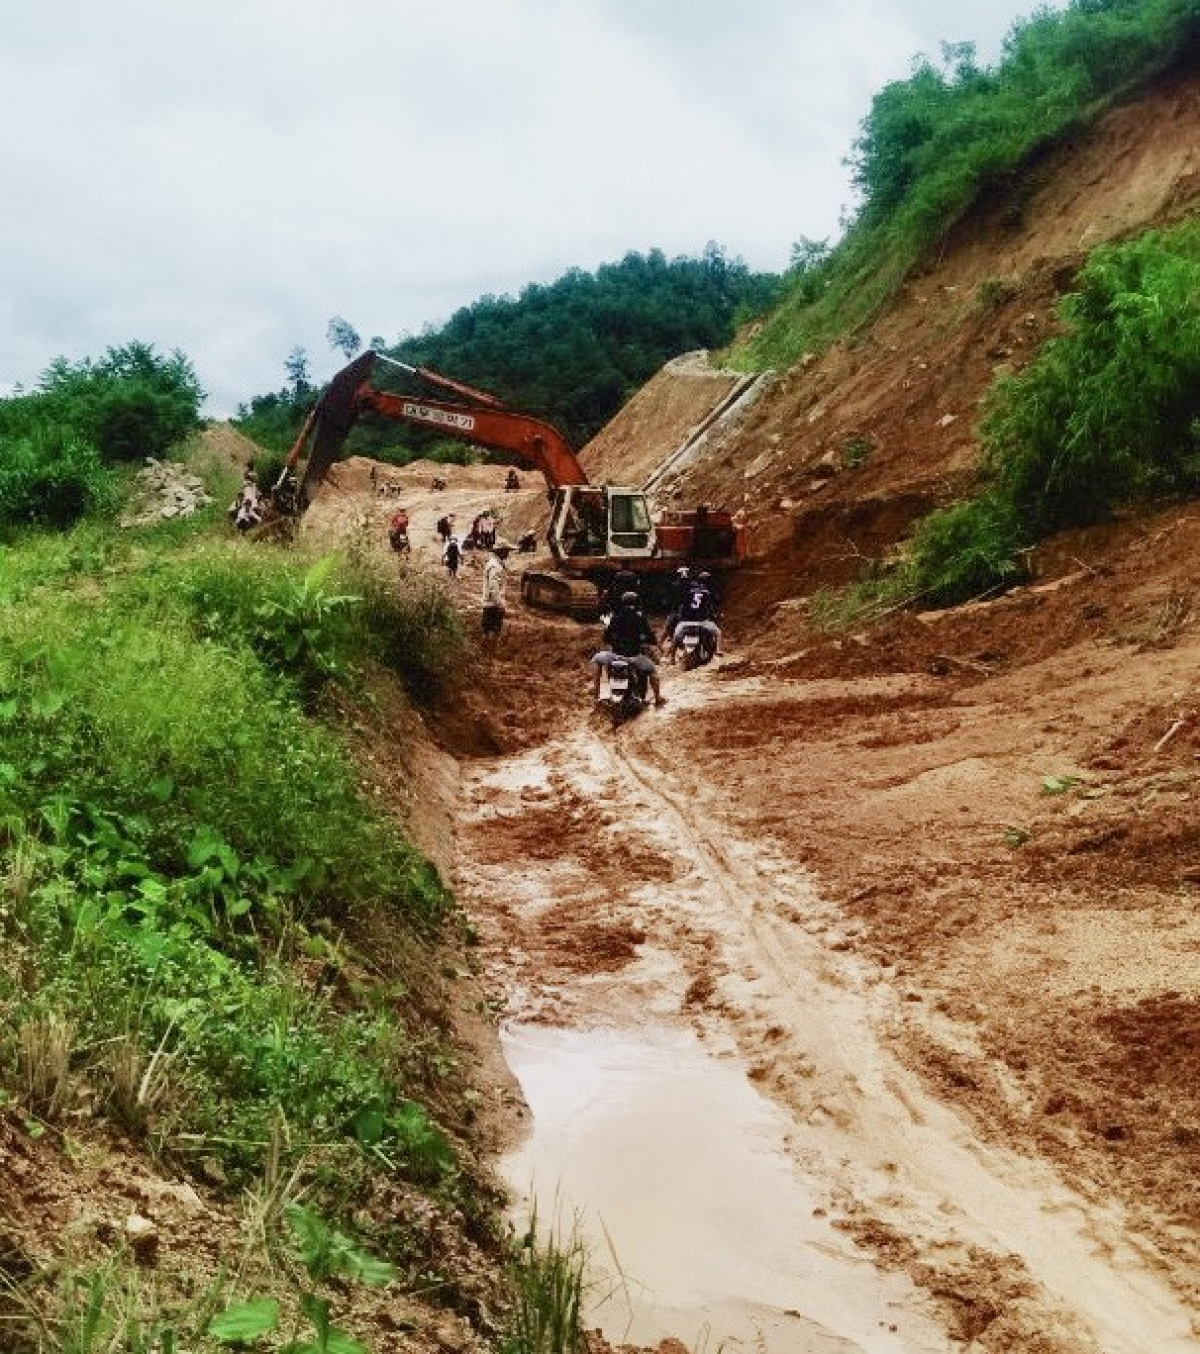 Repair work is quickly completed in Son Tay district of Quang Ngai province in order to ensure safe travel for local people.